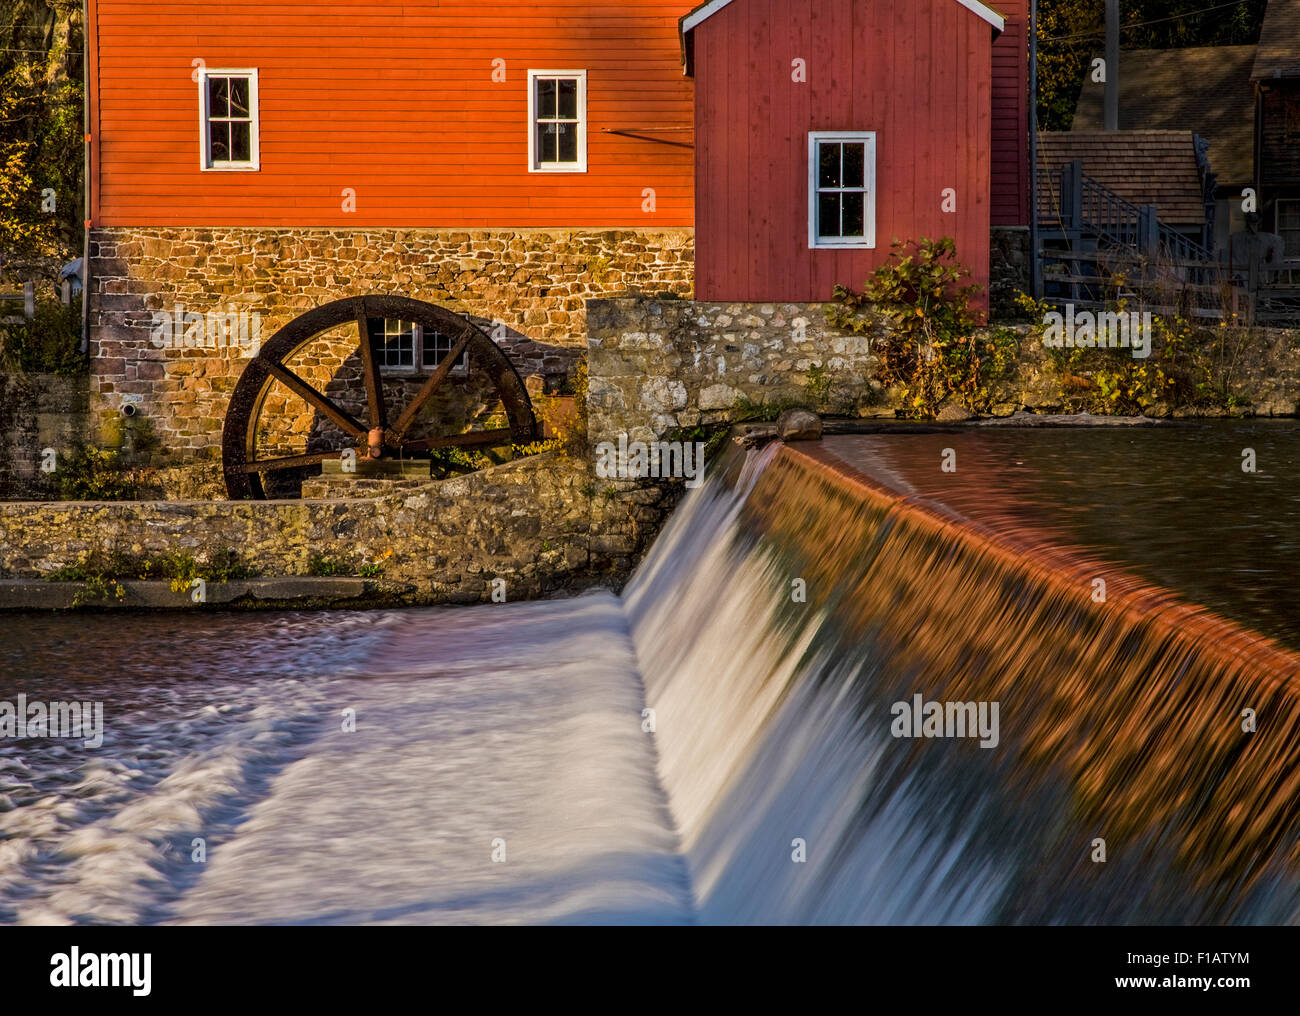 The historic Red Mill, gristmill, vintage water wheel and the Raritan River Damn in Clinton, New Jersey, USA, pov - Stock Image